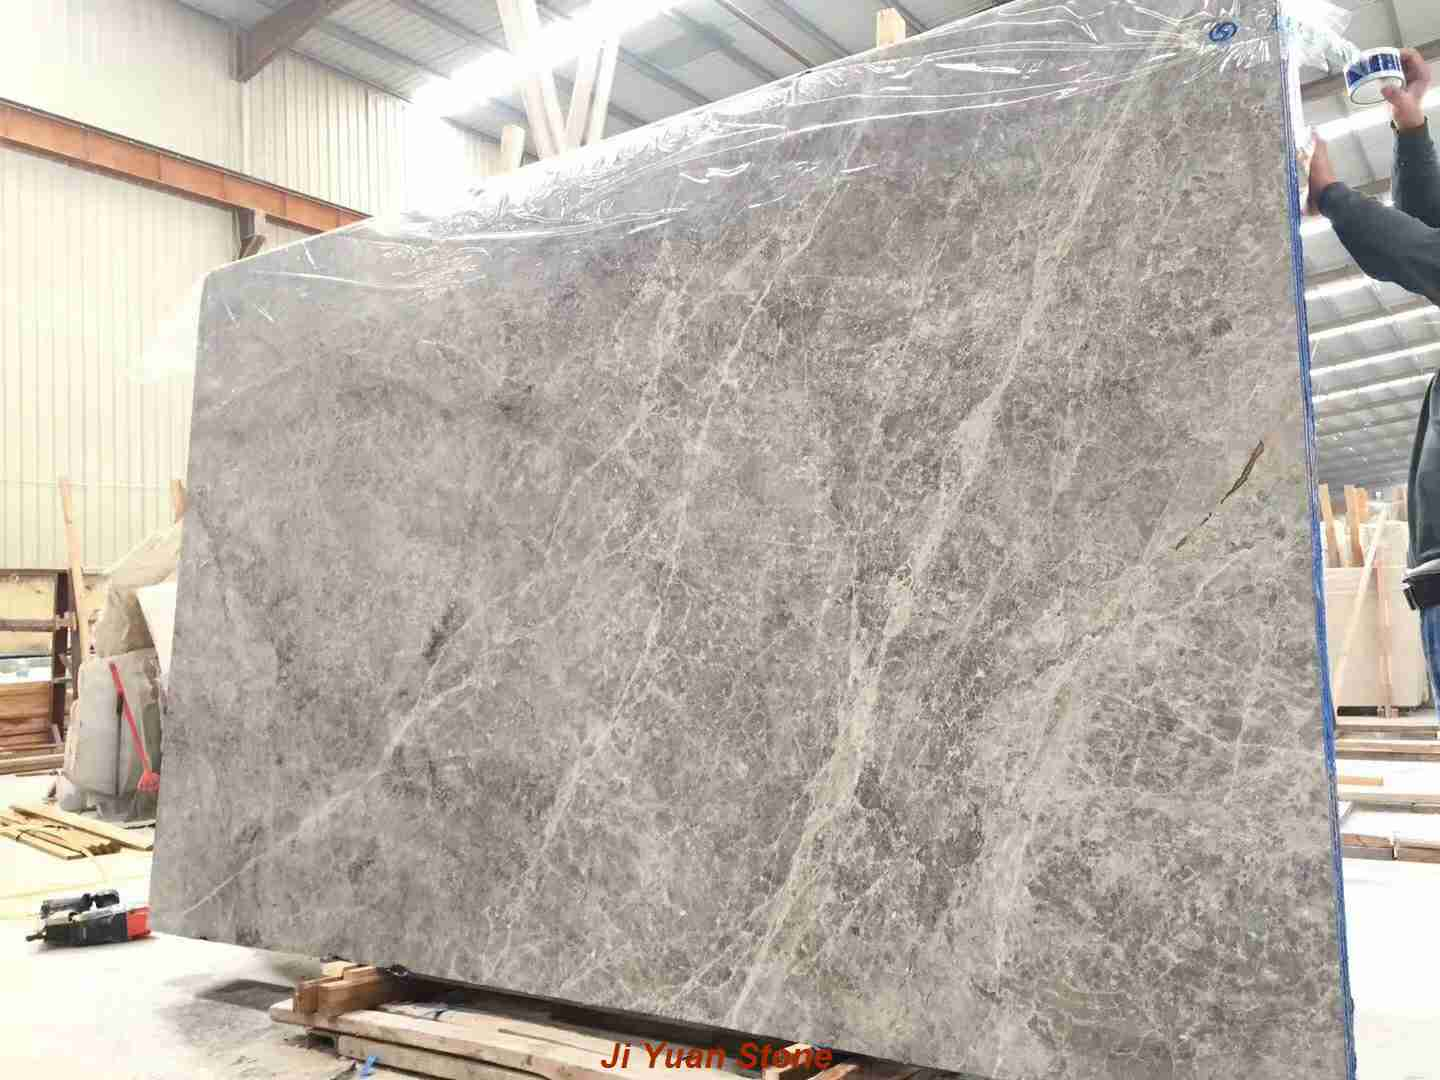 Grey marble countertops,grey marble tiles,grey marble floor,grey stone tiles,white and grey marble,grey and white marble bathrooms,white and grey countertops,grey brick tiles